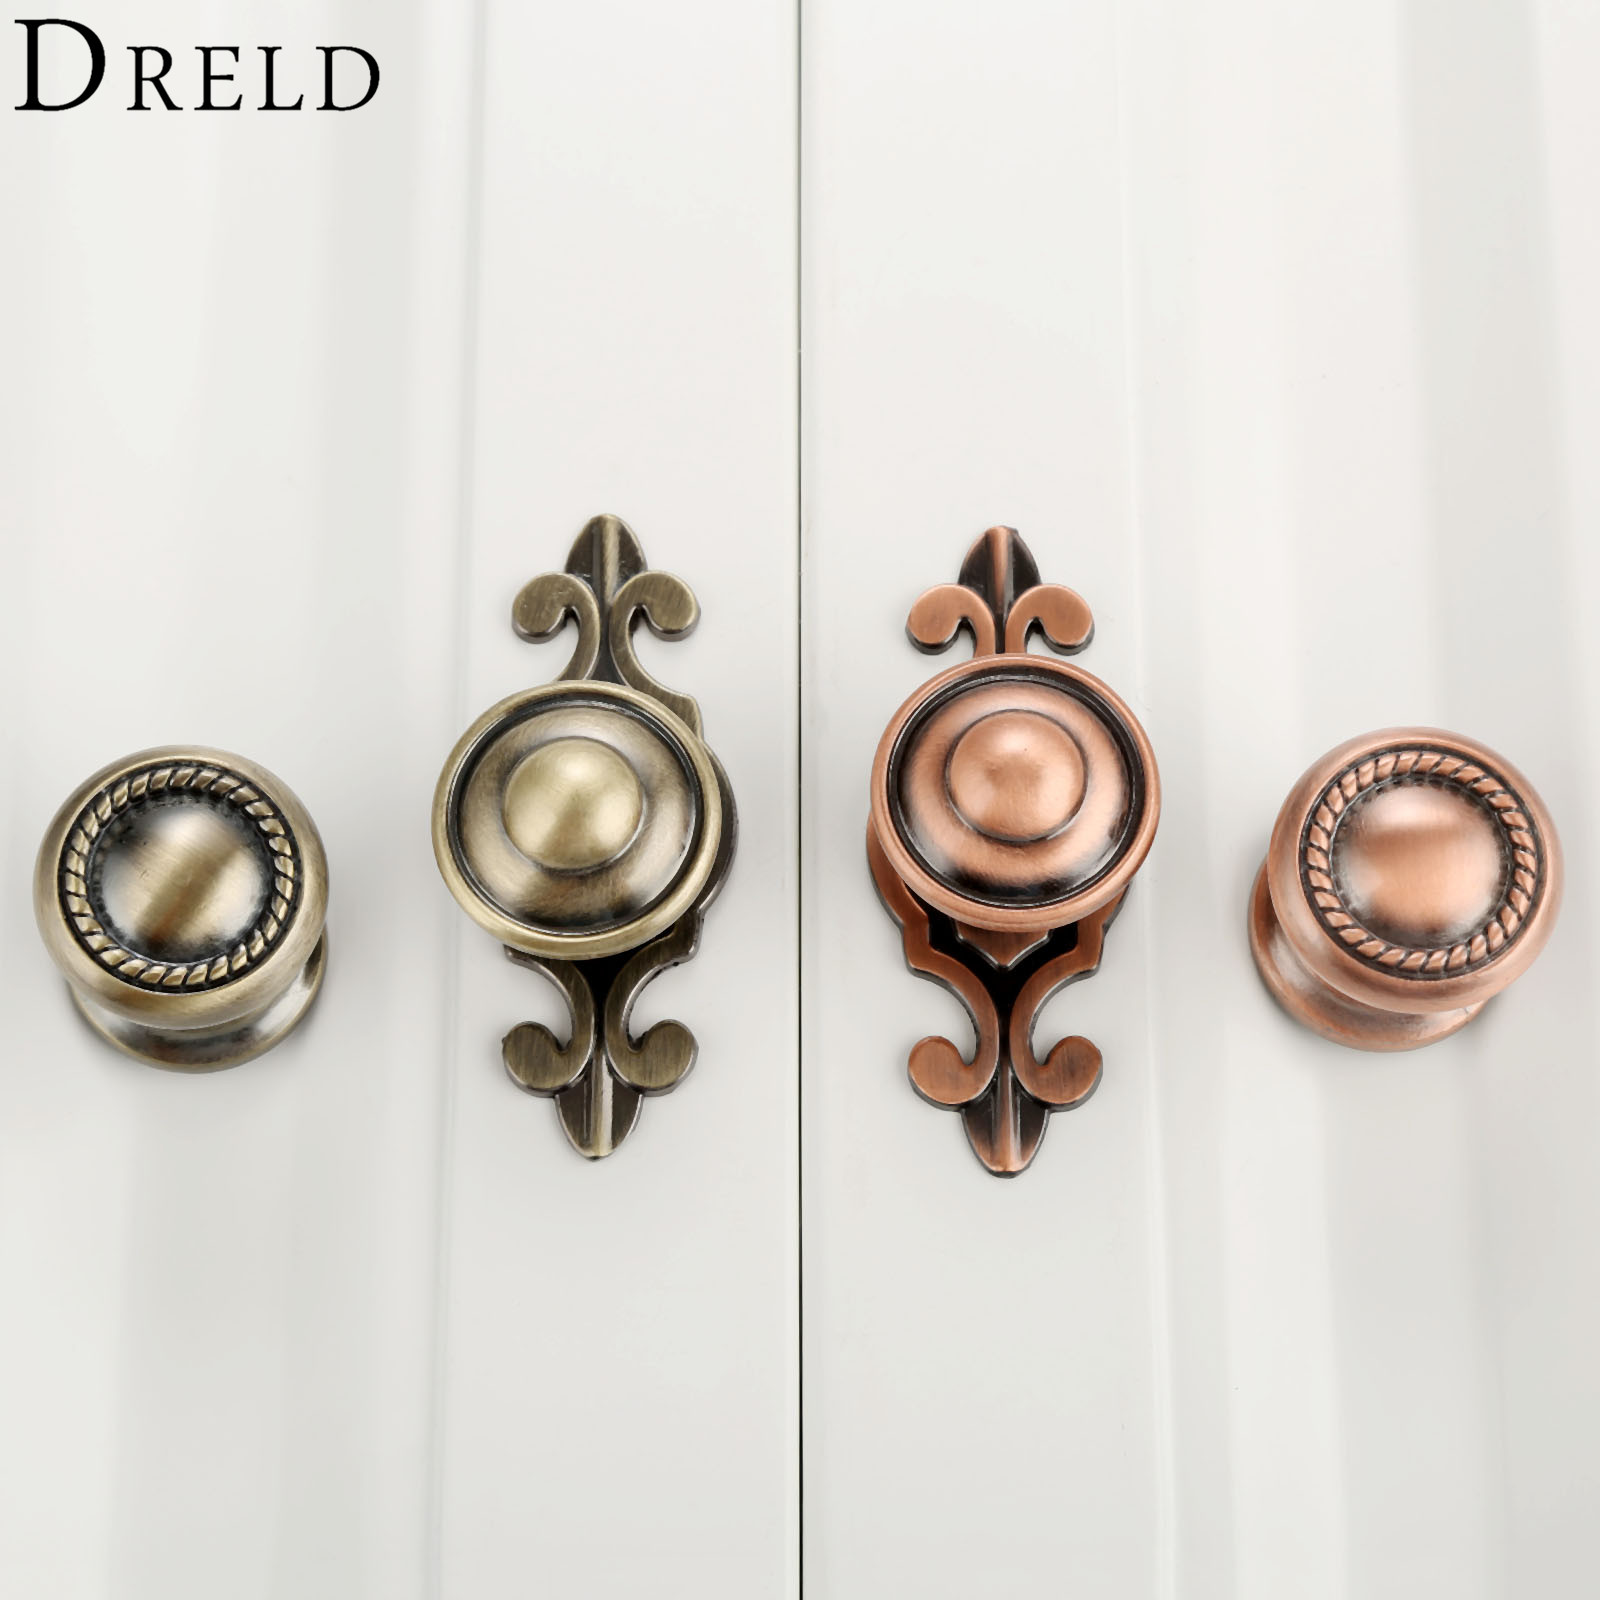 DRELD Furniture Handles Vintage Cabinet Knobs and Handles Alloy Door Knob Cupboard Drawer Kitchen Pull Handle Furniture Hardware furniture drawer handles wardrobe door handle and knobs cabinet kitchen hardware pull gold silver long hole spacing c c 96 224mm